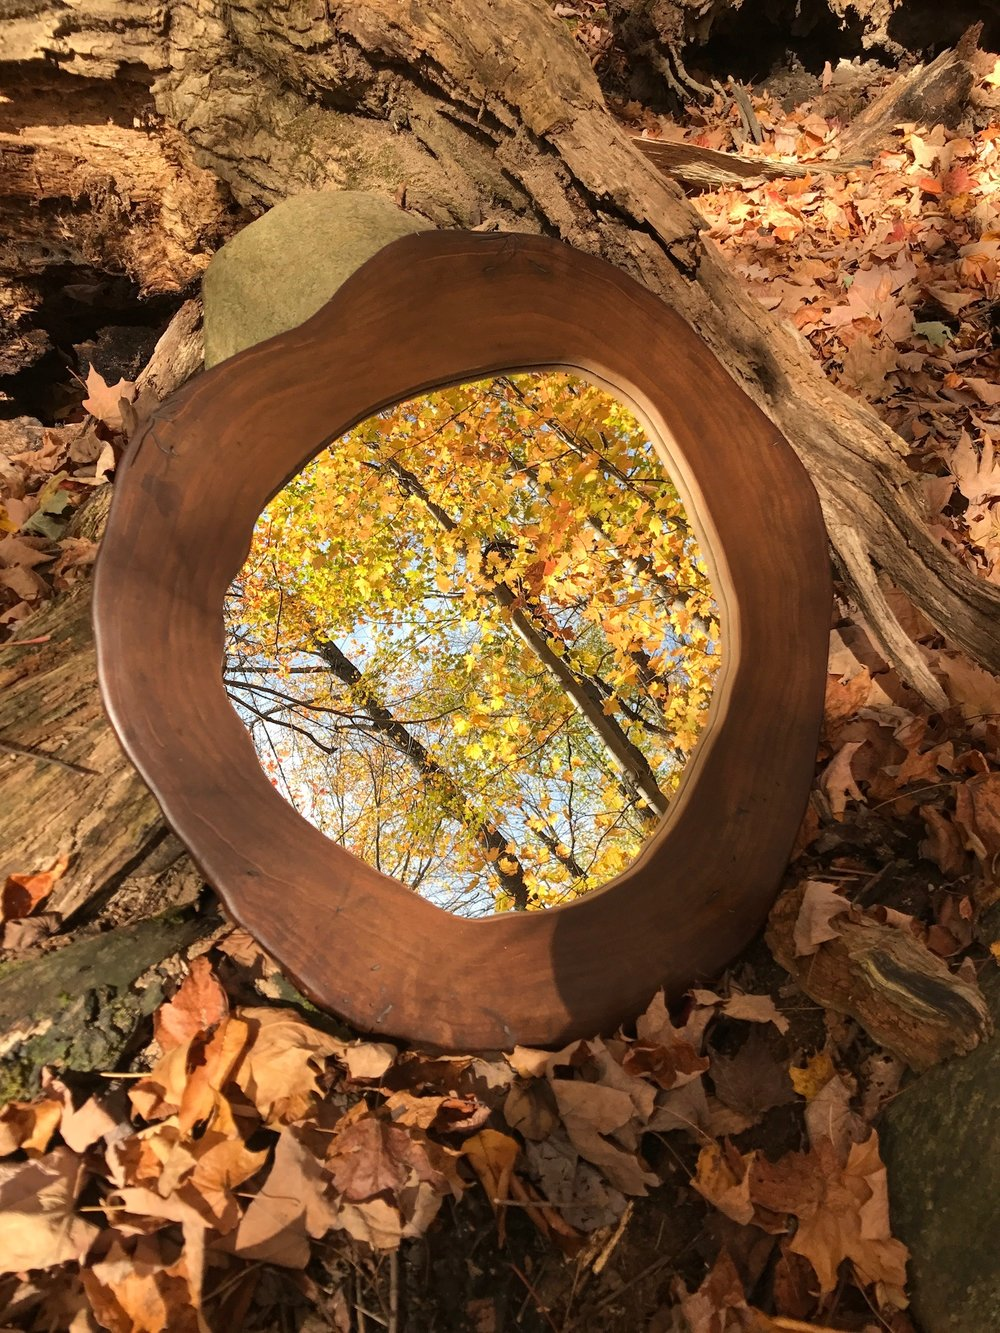 Fall leaves surround this natural style mirror reflecting the image over the trees overhead.